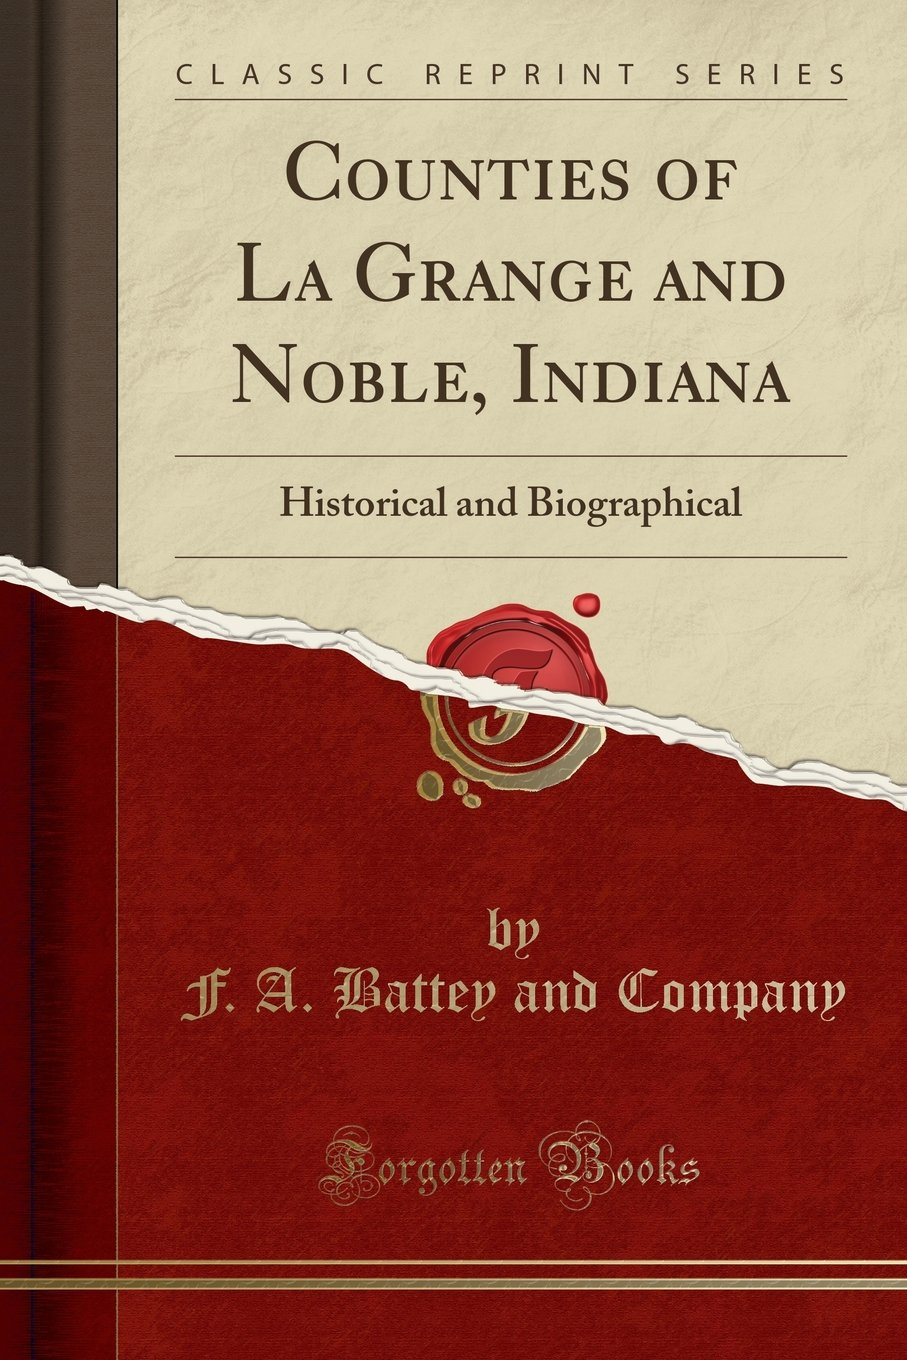 Counties of La Grange and Noble, Indiana: Historical and Biographical (Classic Reprint) PDF